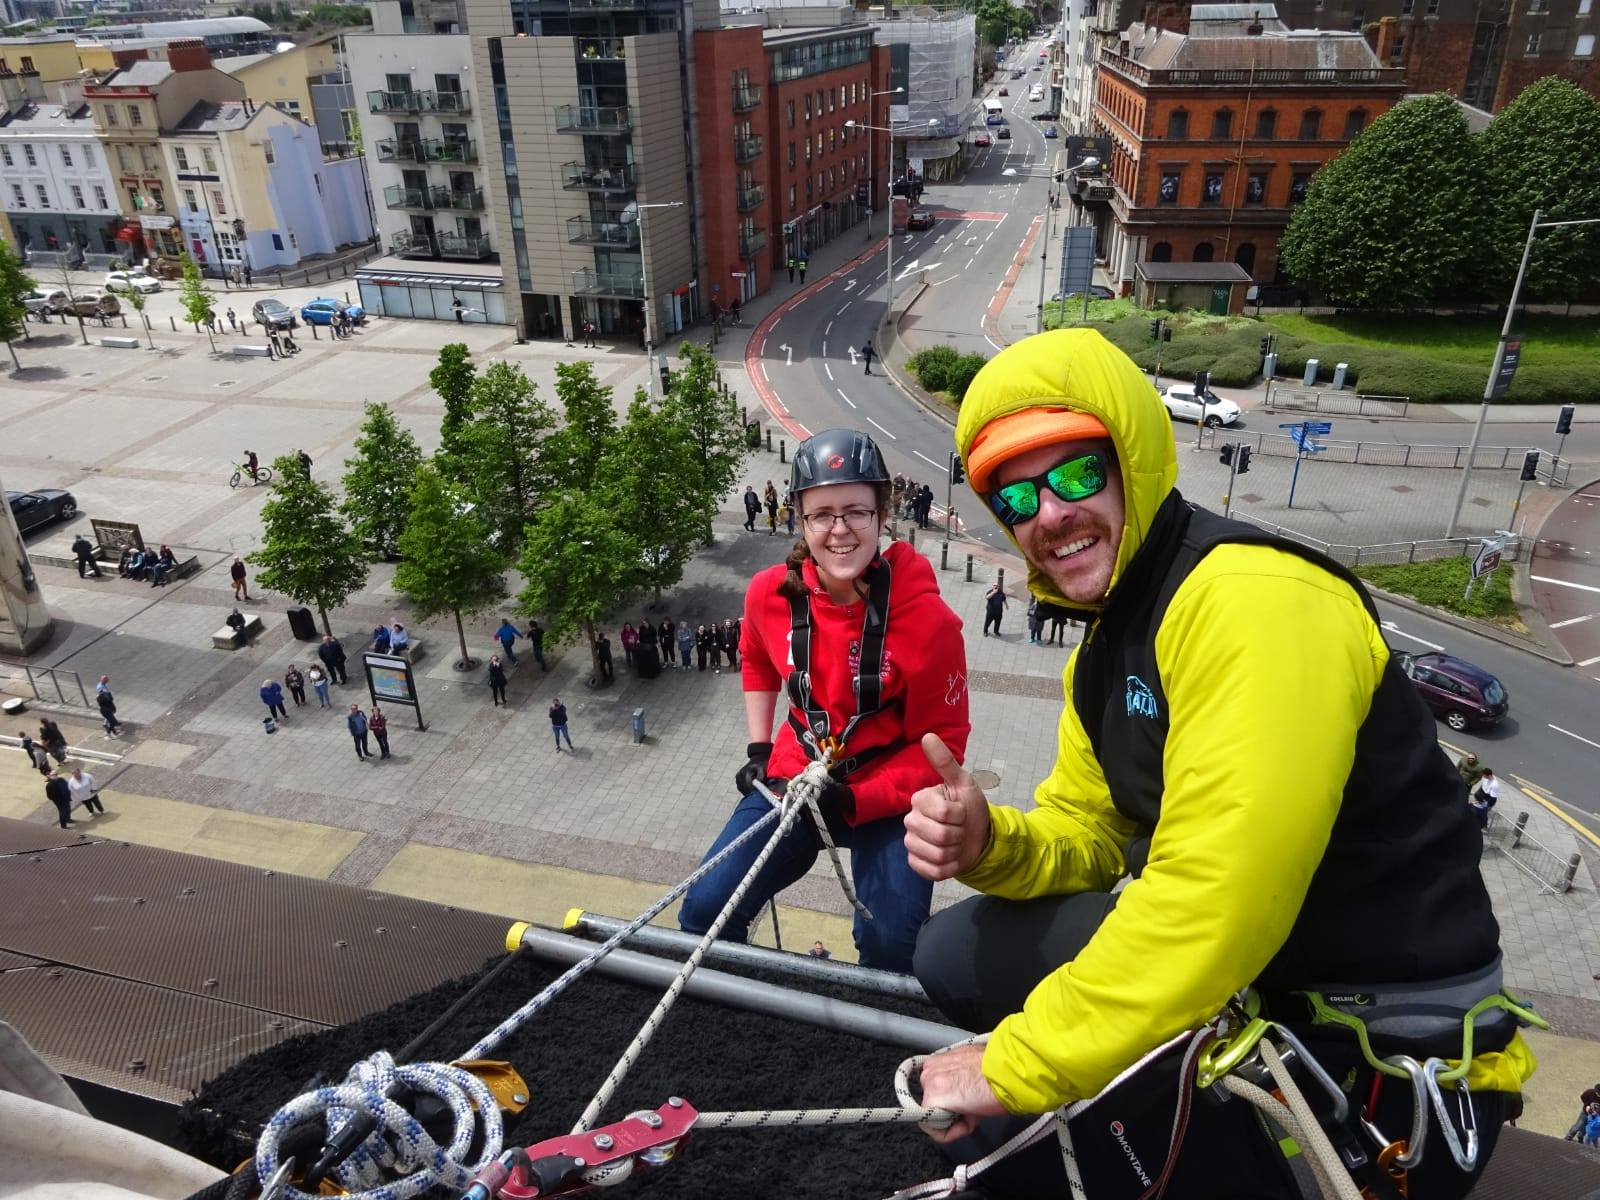 Charity Abseil Event in Cardiff